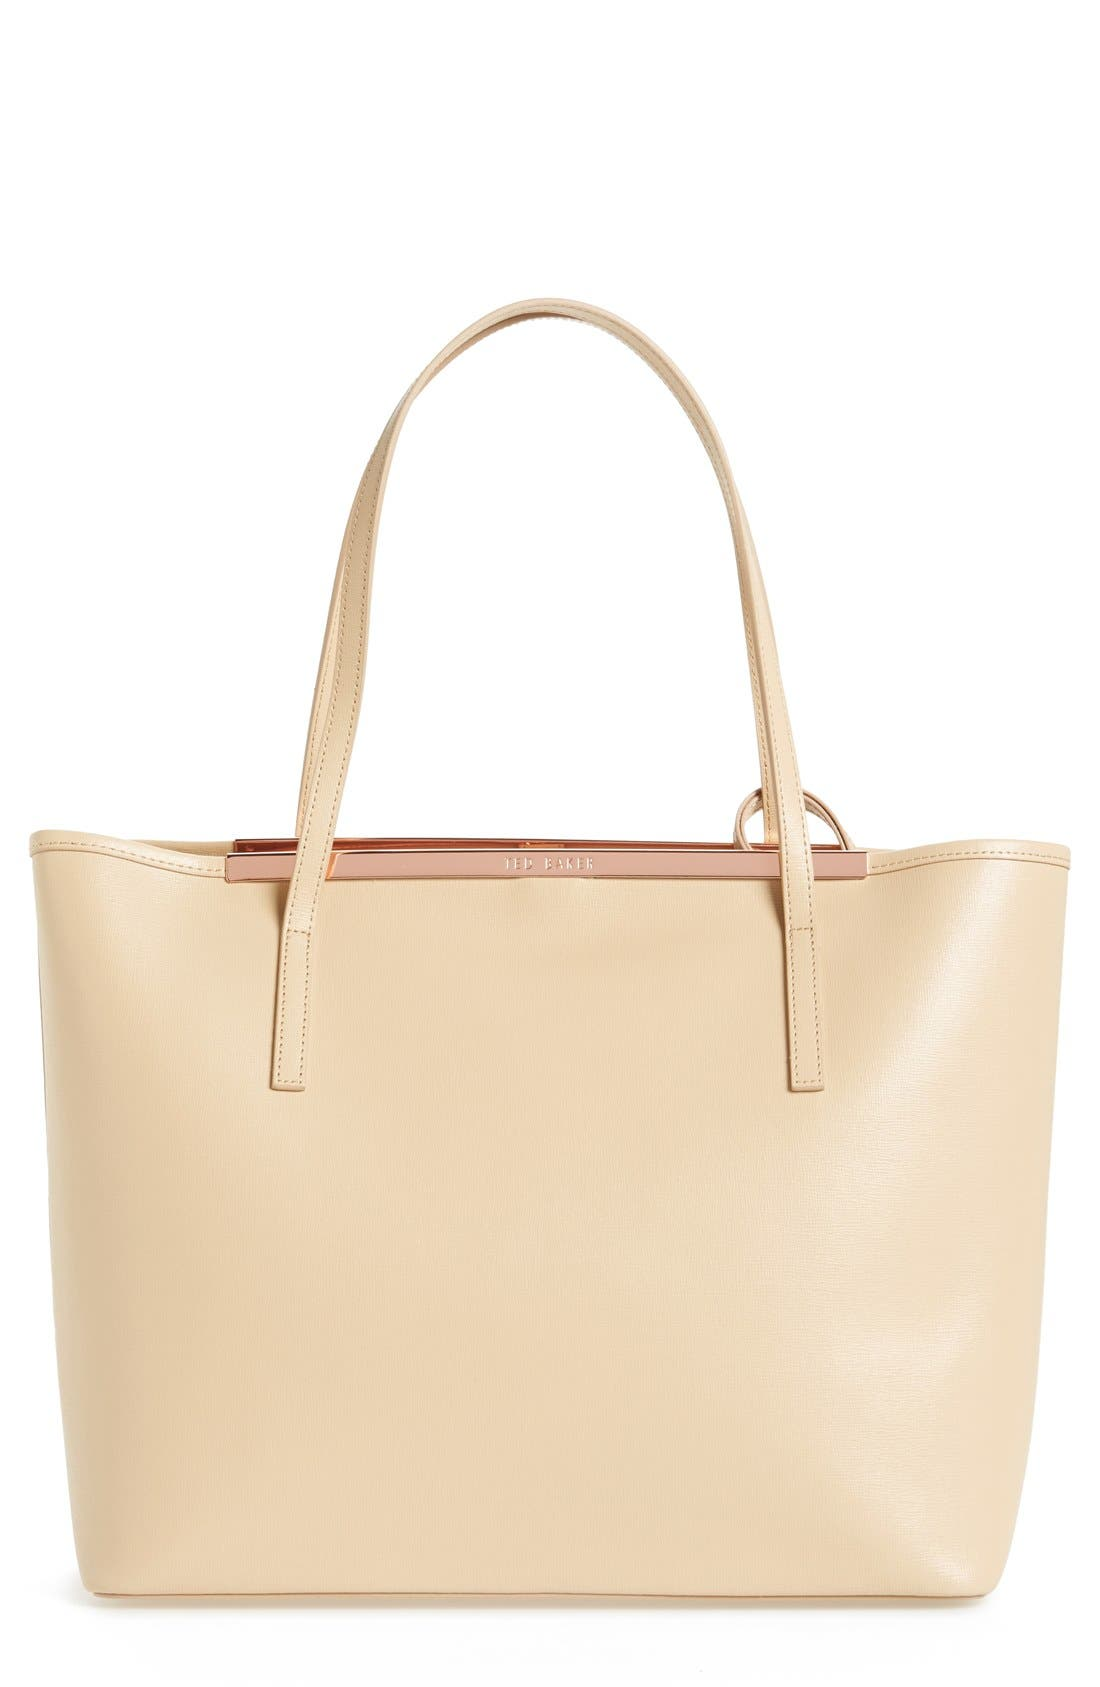 Alternate Image 1 Selected - Ted Baker London 'Isbell' Leather Tote